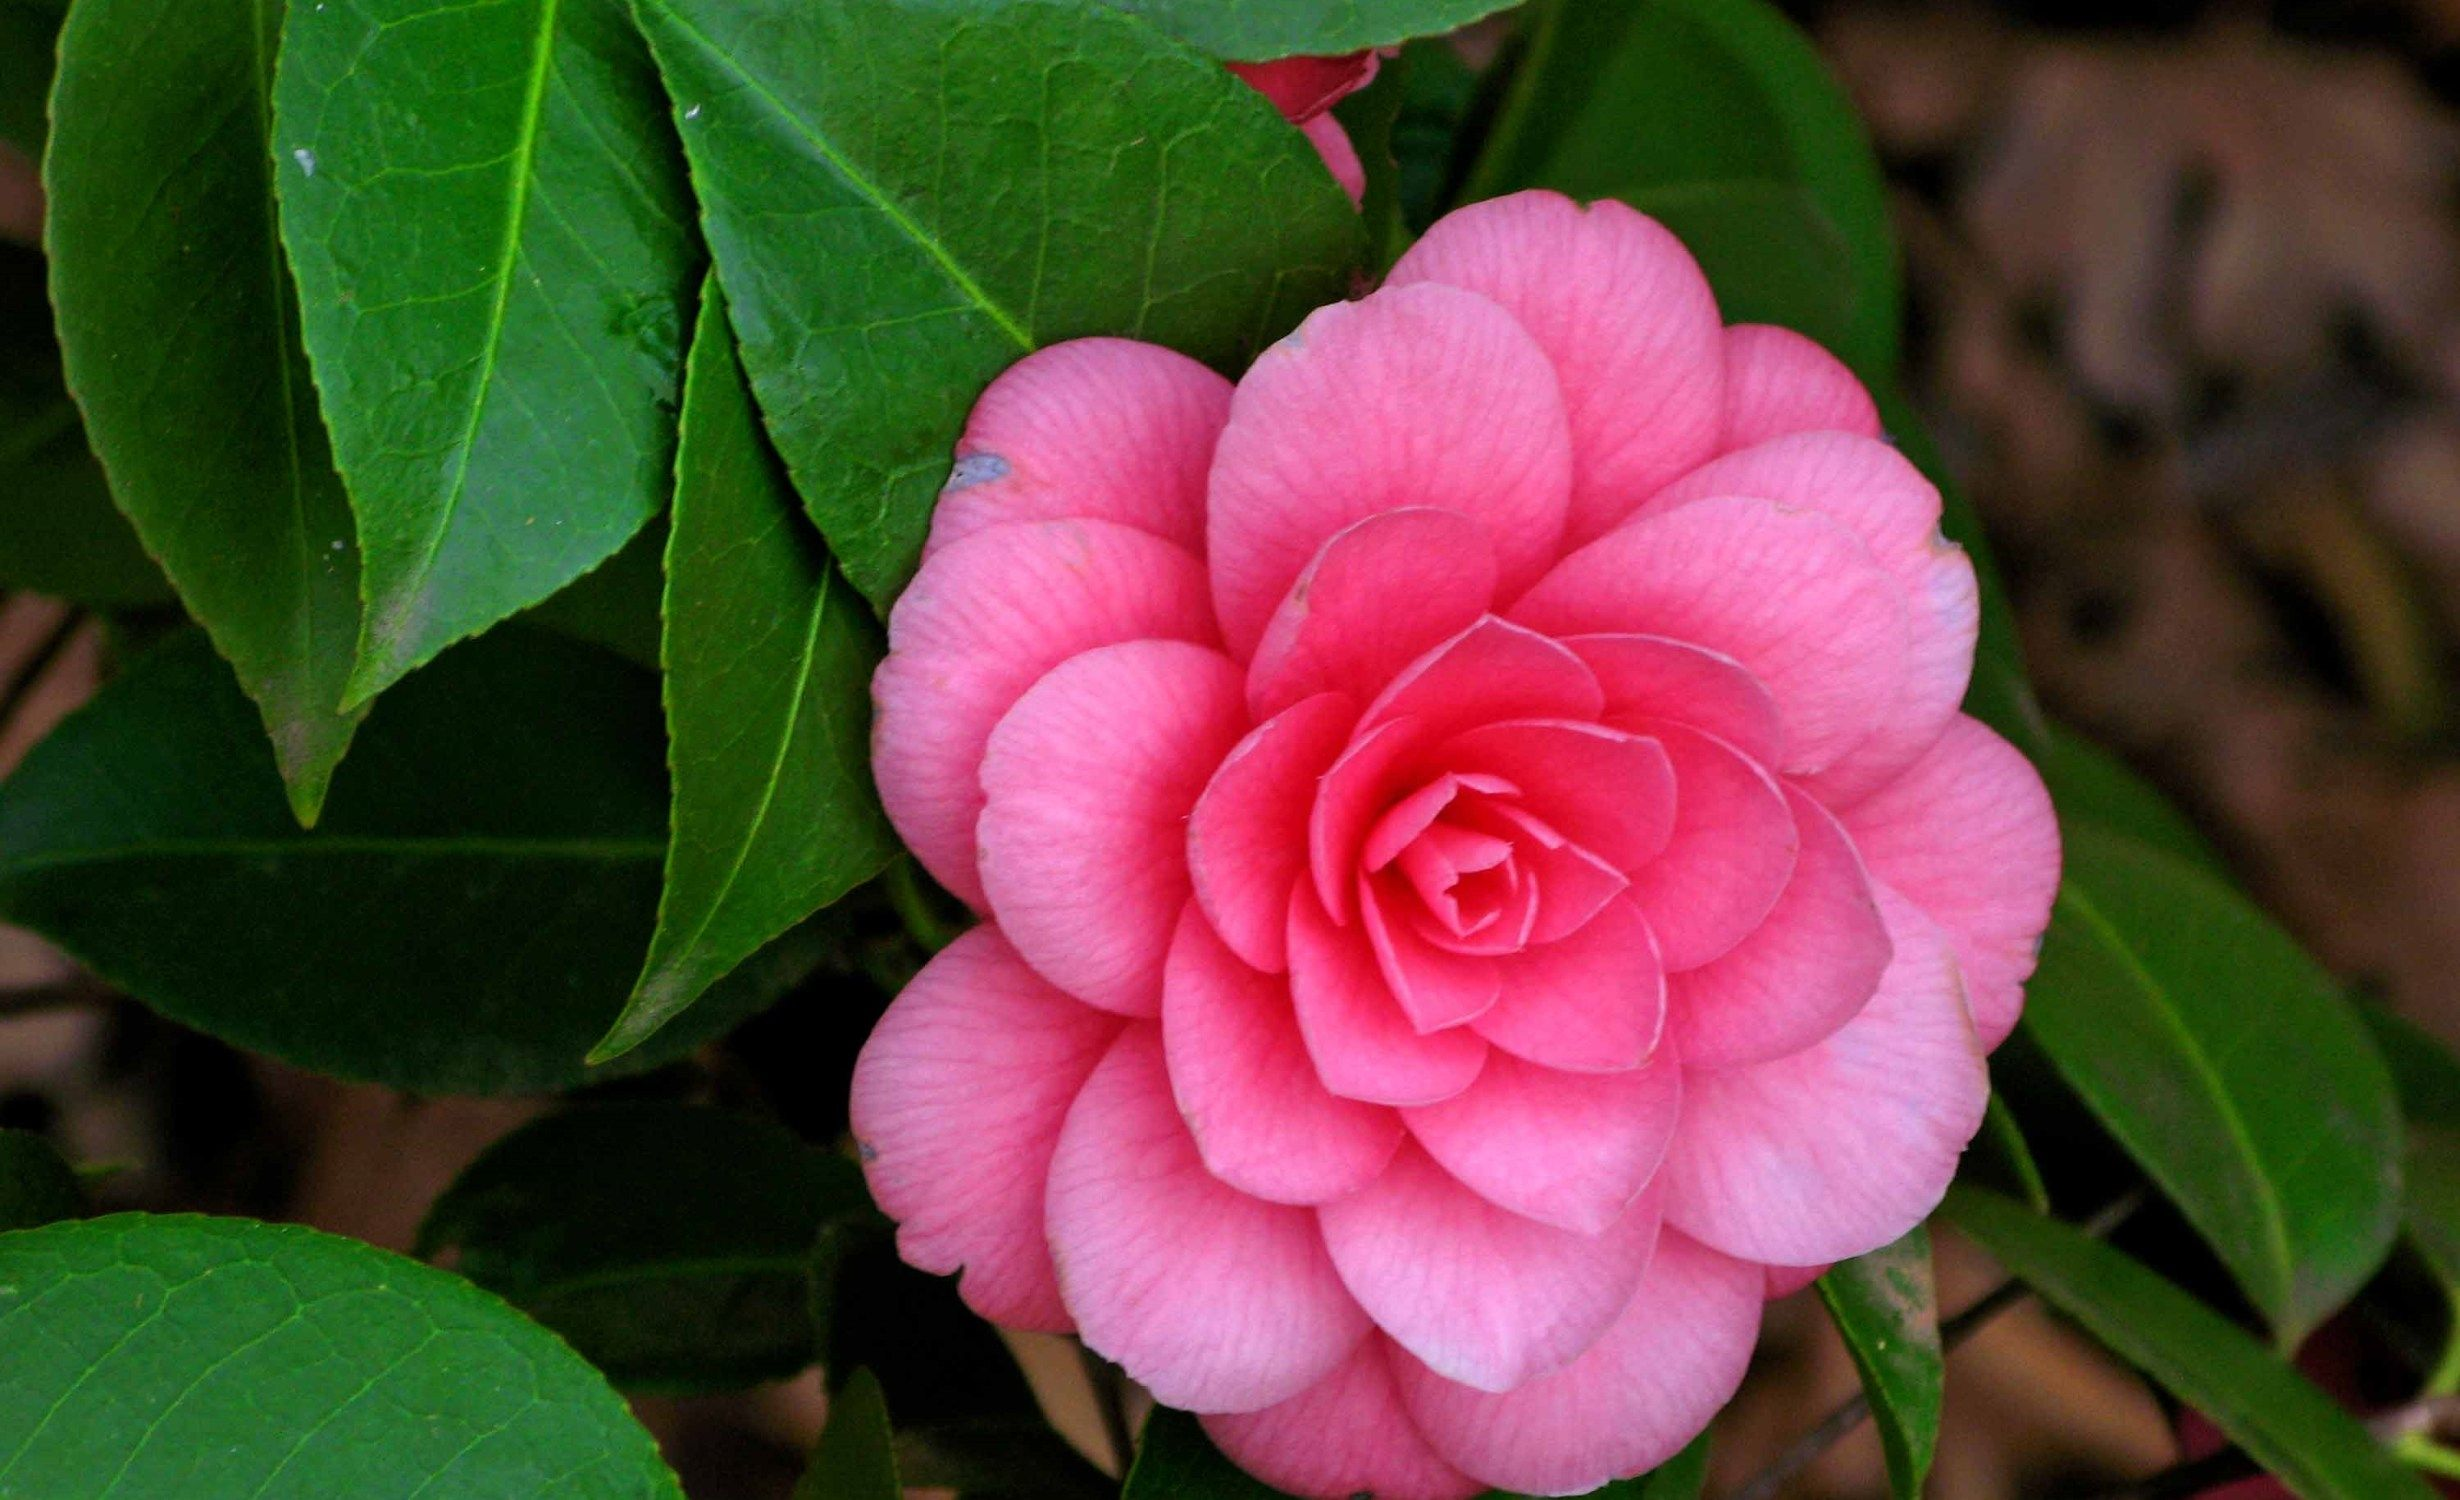 Top 10 Most Beautiful Camellia Flowers In The World In 2020 Flowers Name List Flowers Camellia Flower